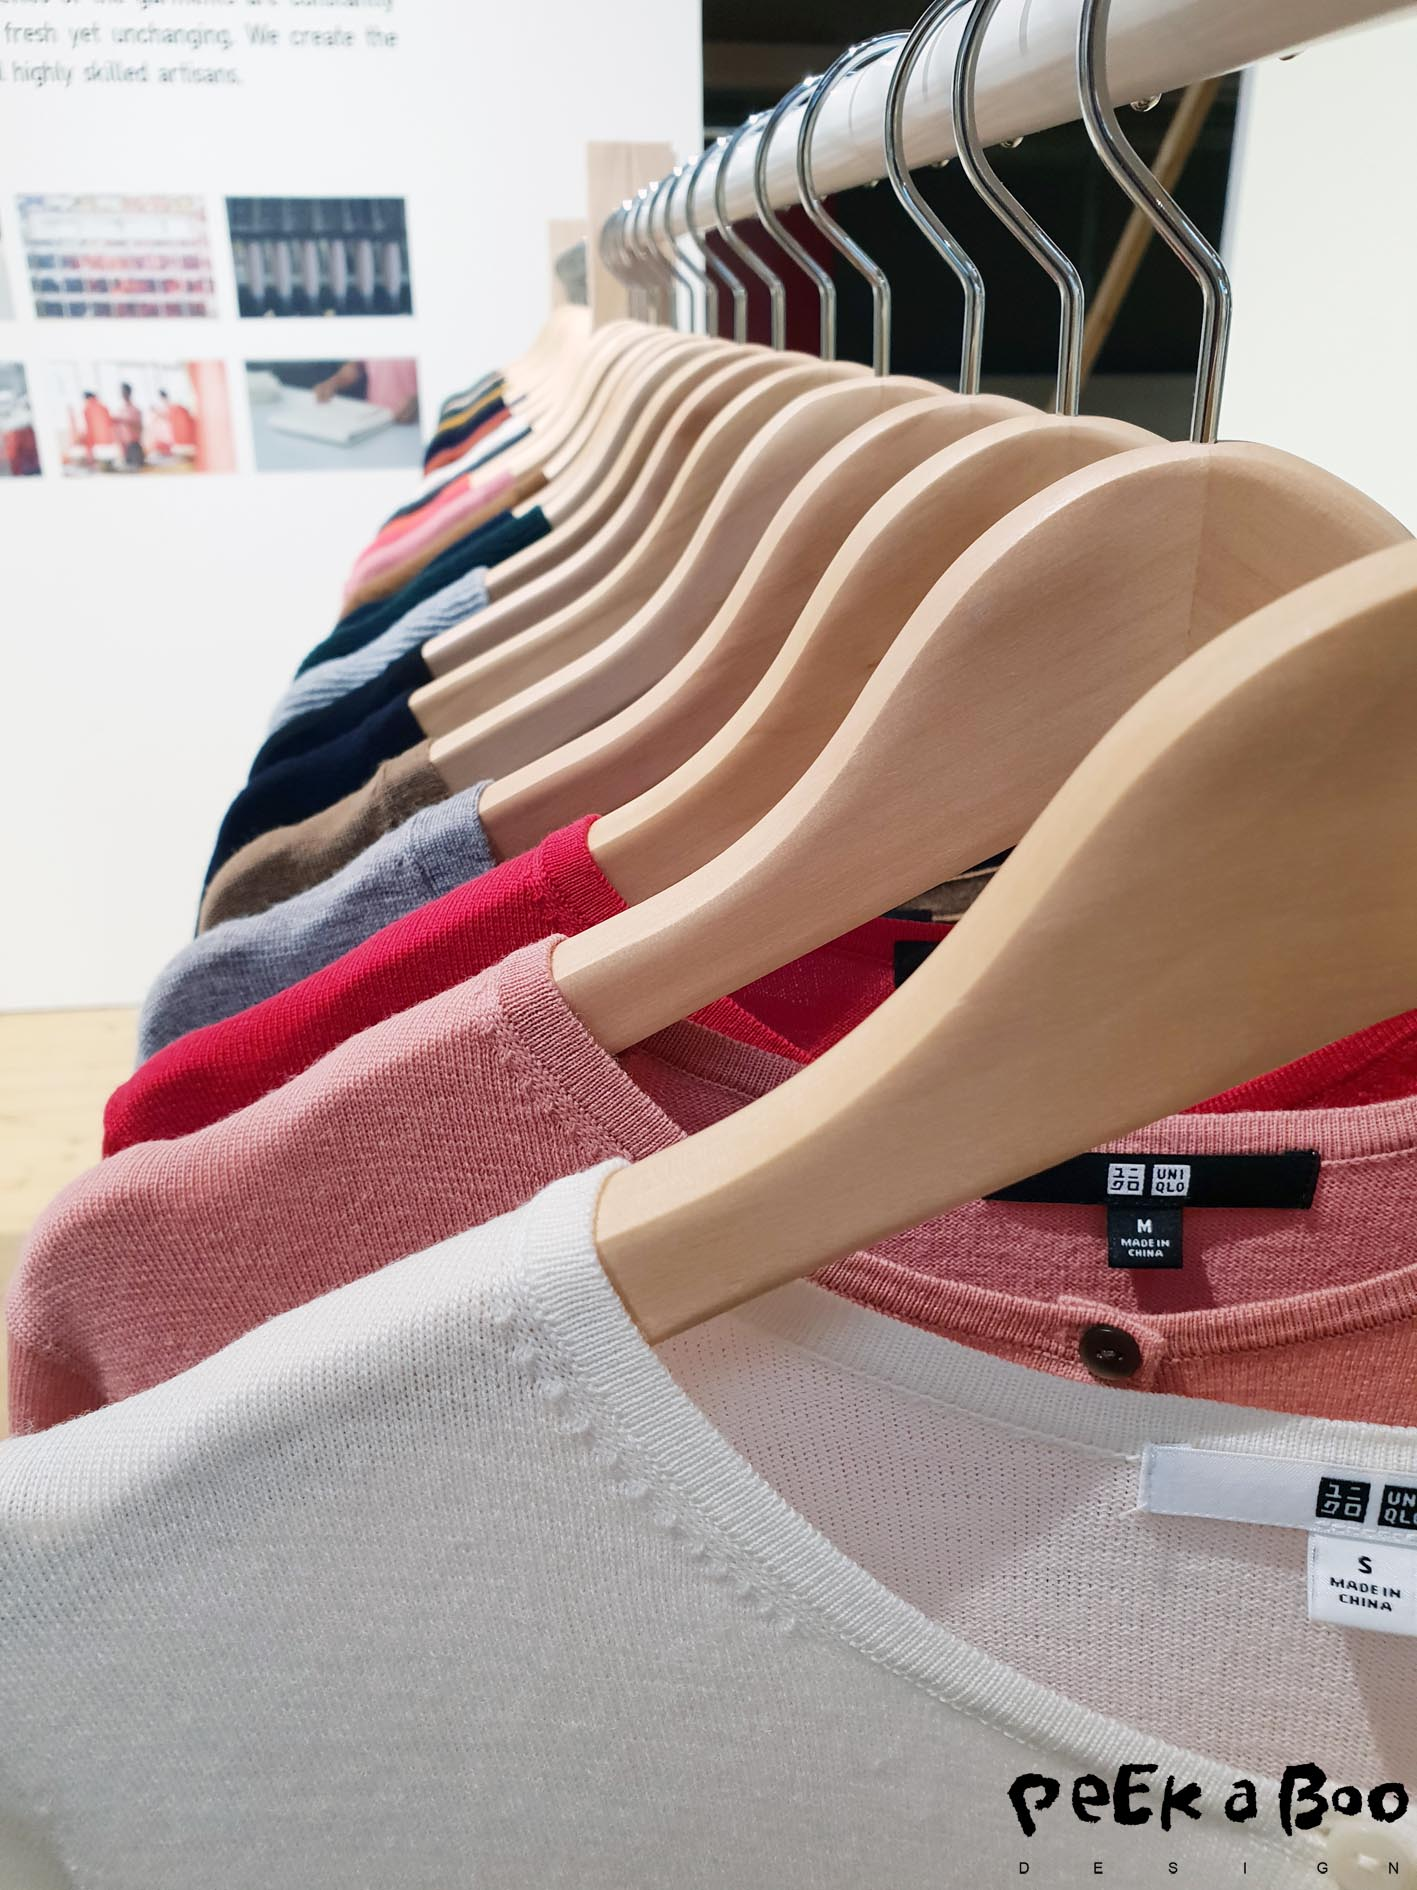 The knitwear is in highquality yarns and the colours are carefully choosen by their designteam.